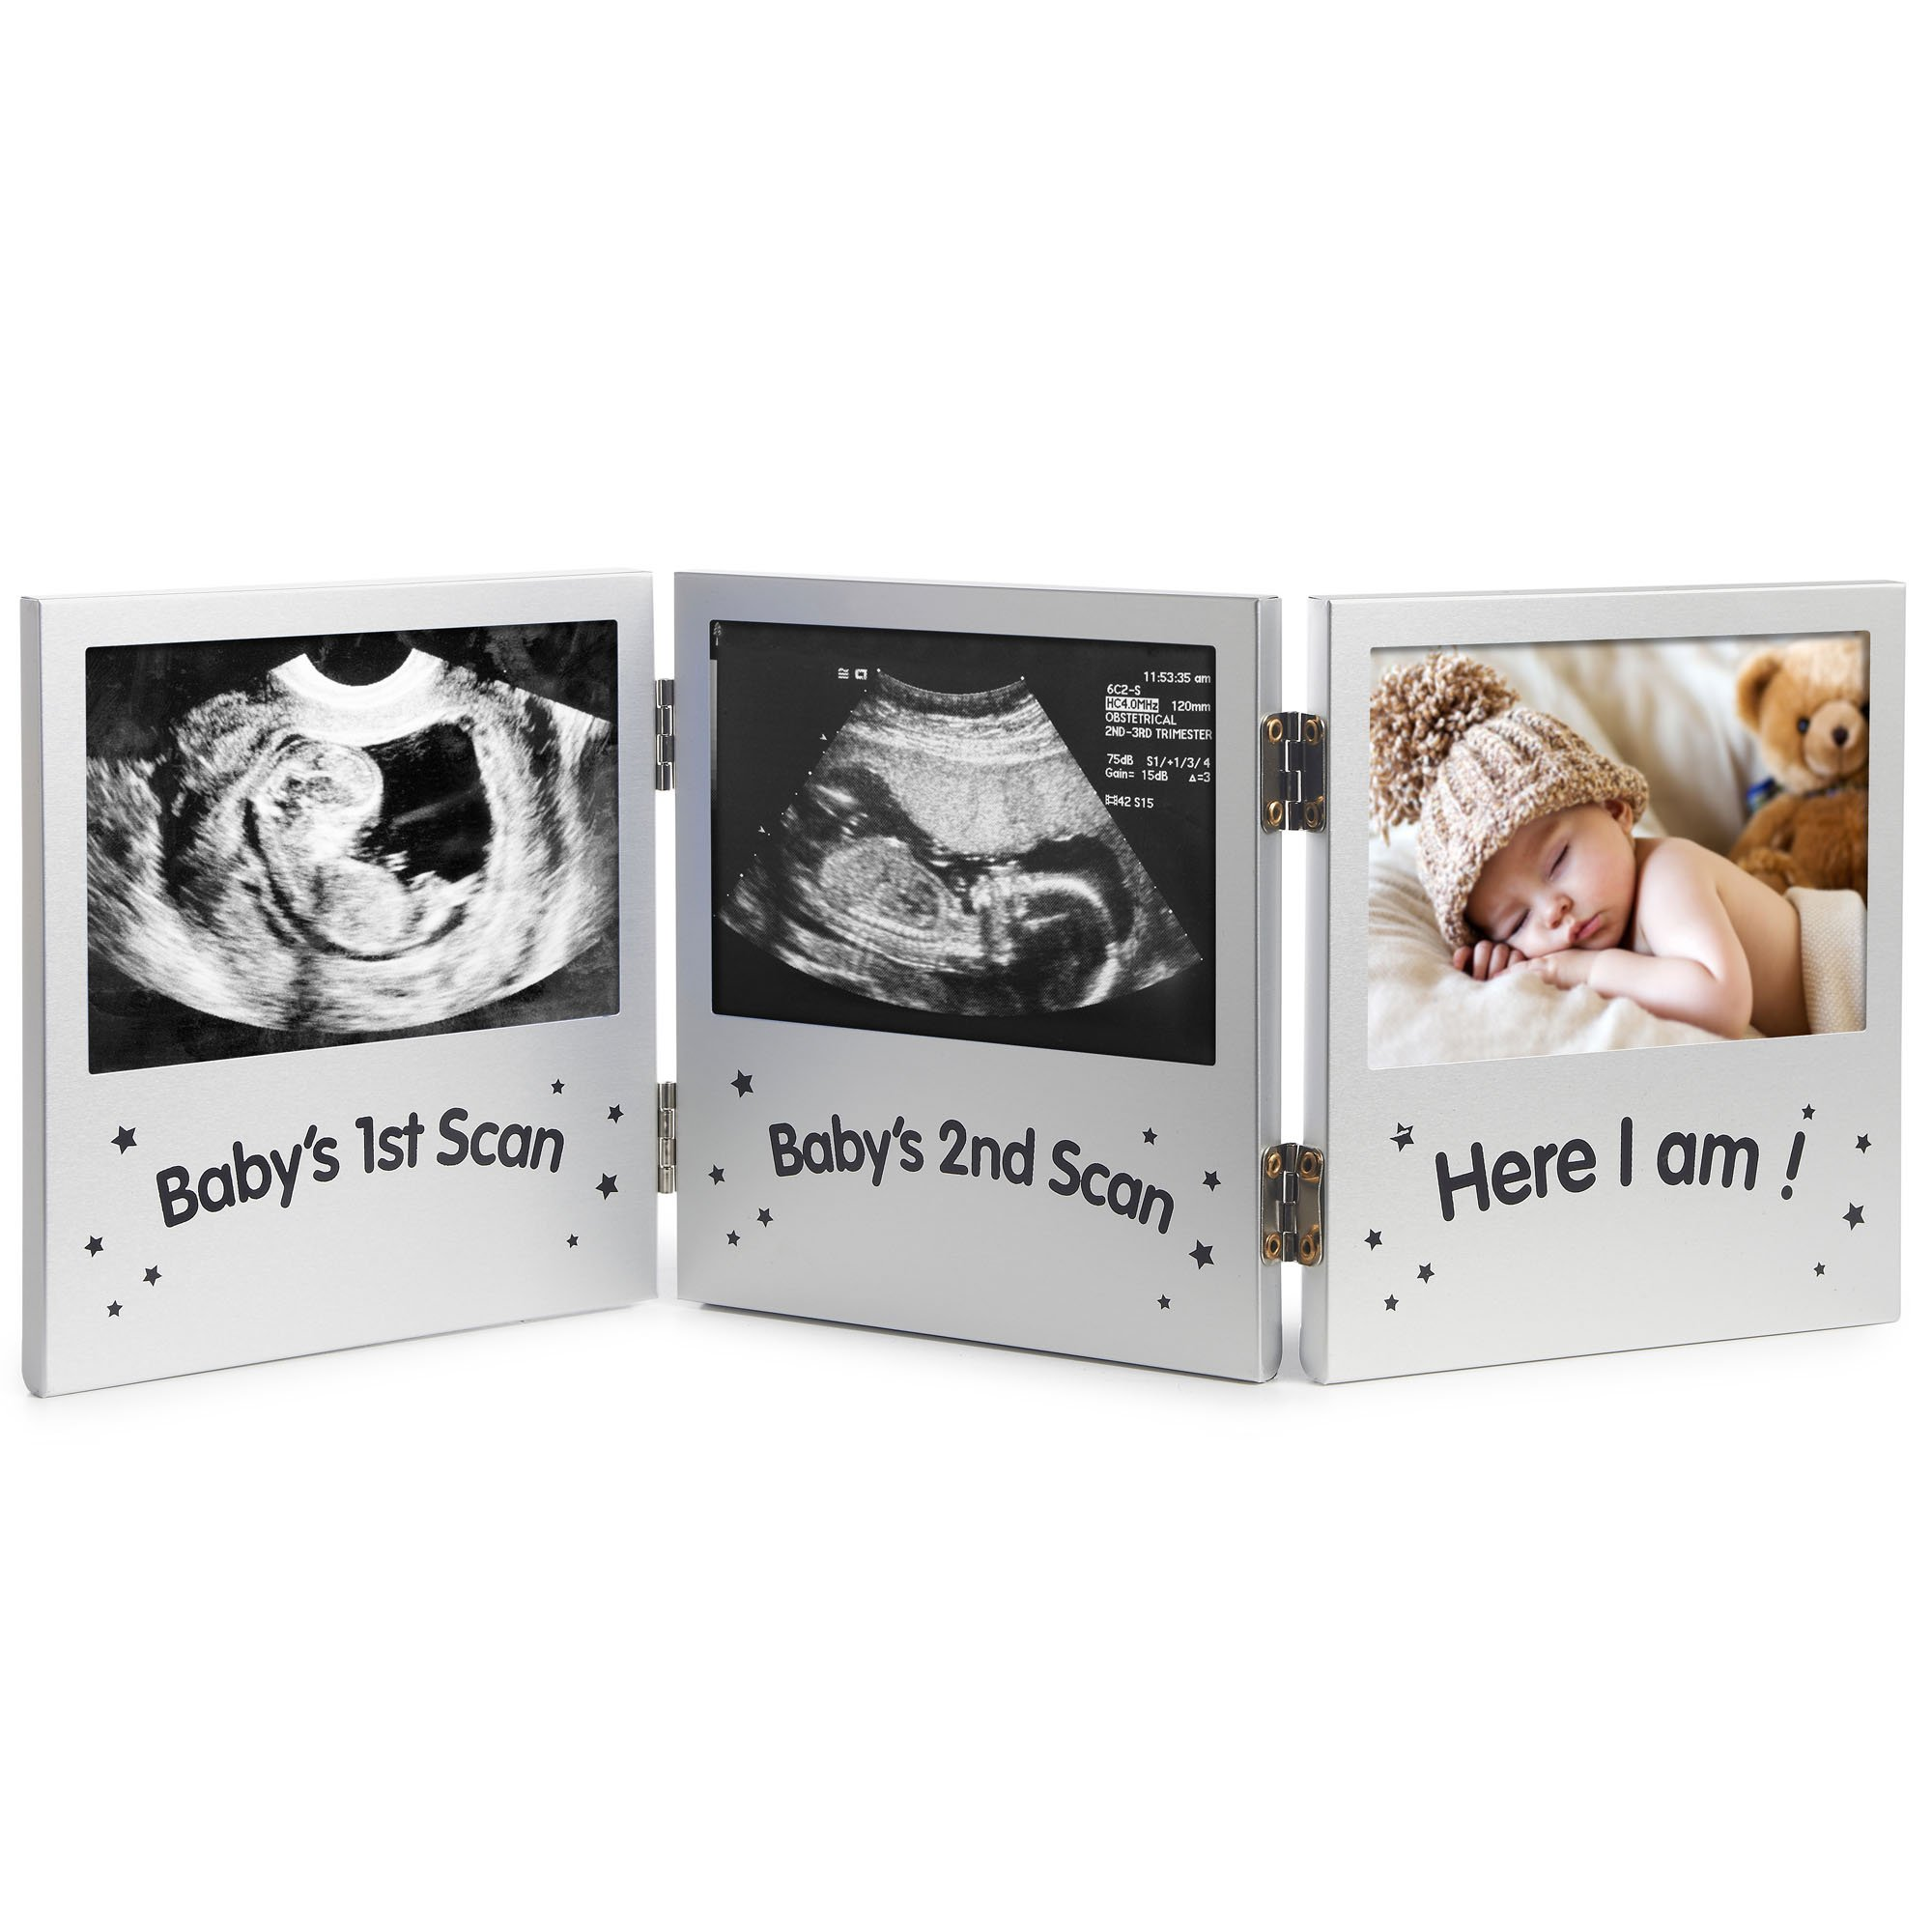 Amazon the grandparent gift co sweet something frame vonhaus triple picture frame for keepsake ultrasound sonogram pregnancy scan images and baby photos the jeuxipadfo Gallery